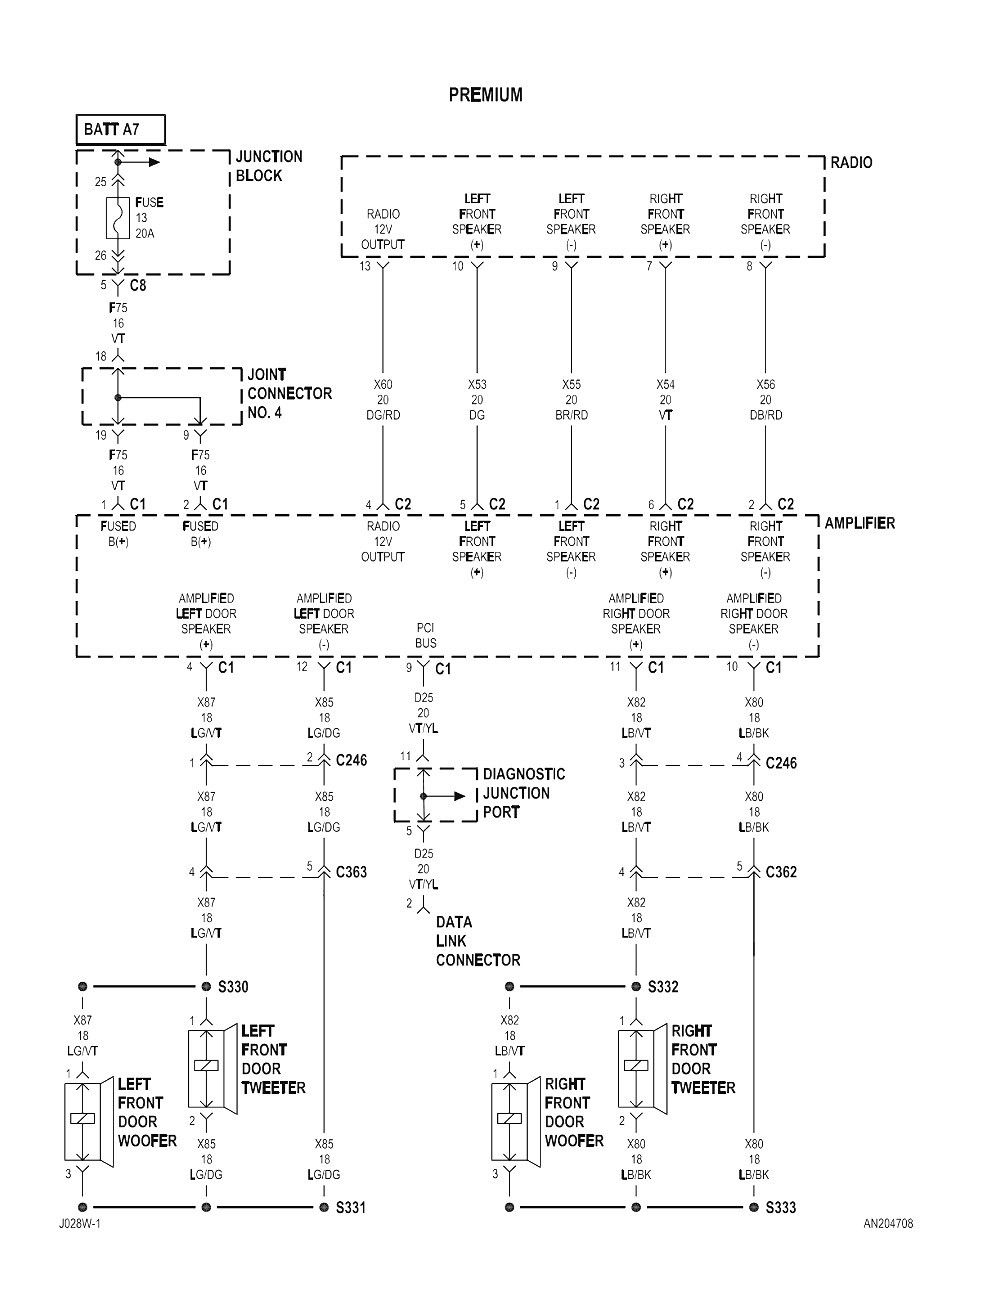 Unique 2001 Dodge Dakota Wiring Diagram In 2020 Dodge Dakota Dodge Durango Dodge